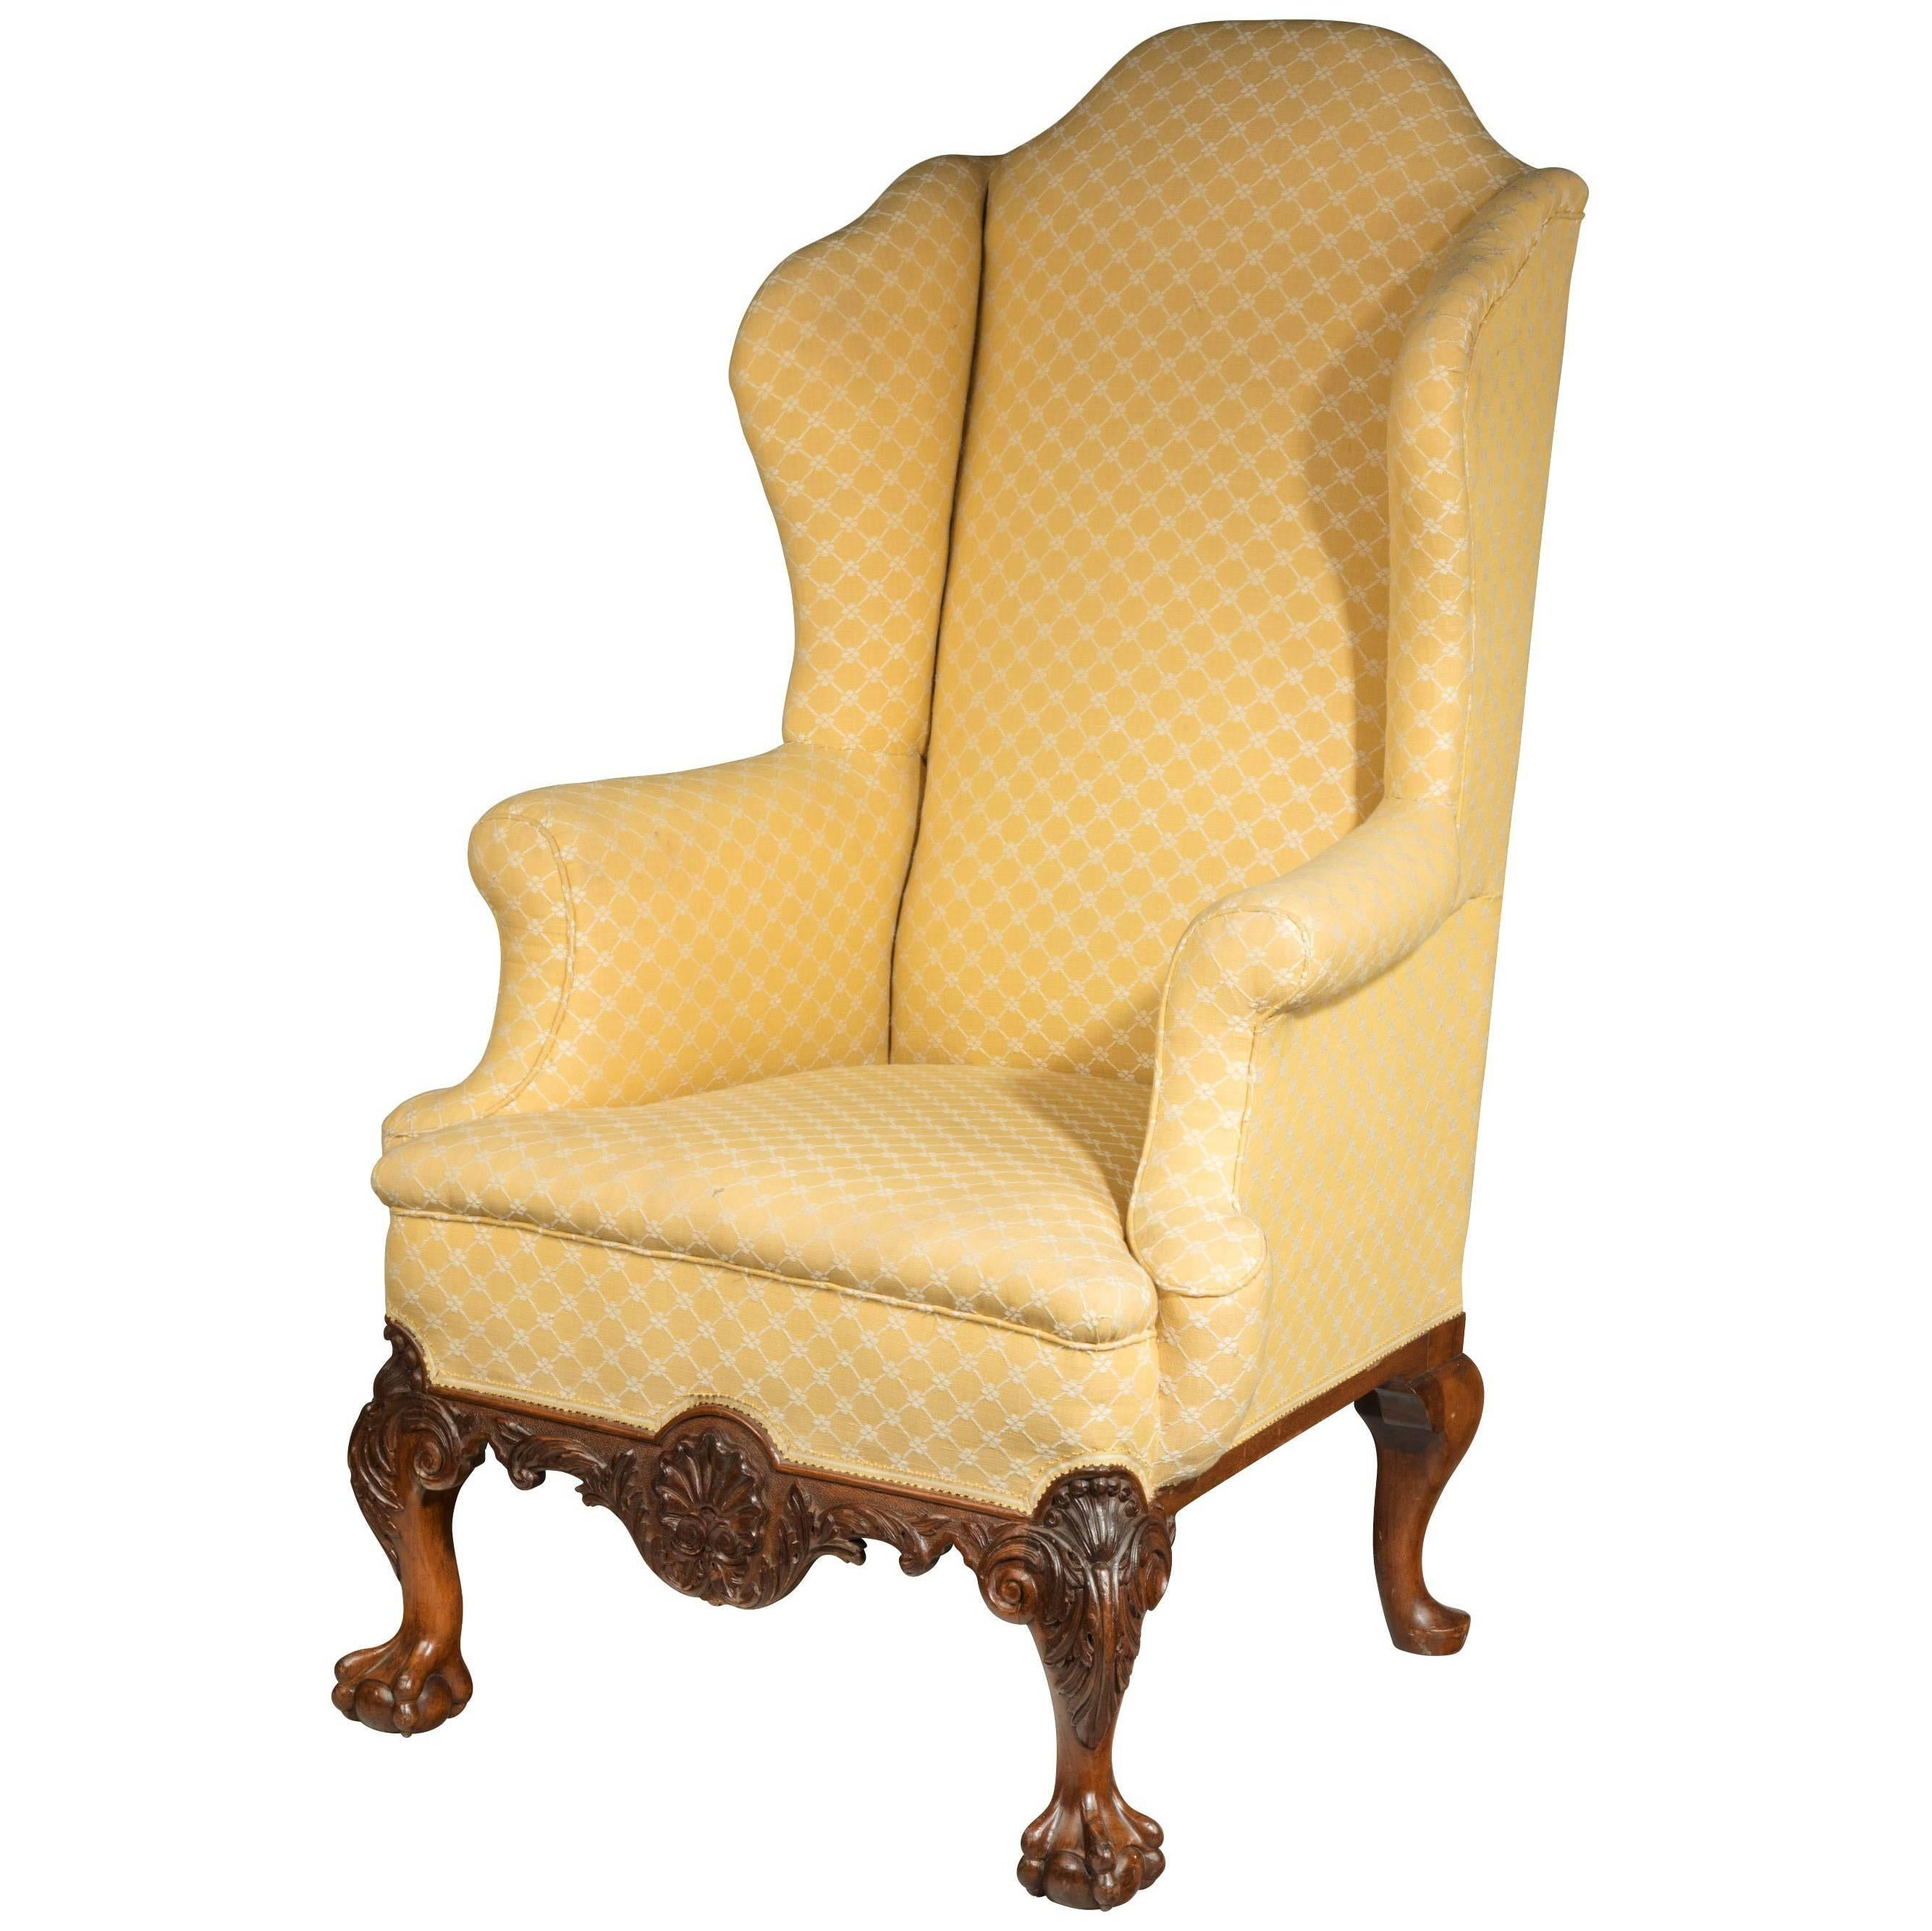 Queen Anne Style Irish Mahogany Framed Wing Chair Terminating in Paw Feet For Sale  sc 1 st  1stDibs & Queen Anne Style Irish Mahogany Framed Wing Chair Terminating in Paw ...